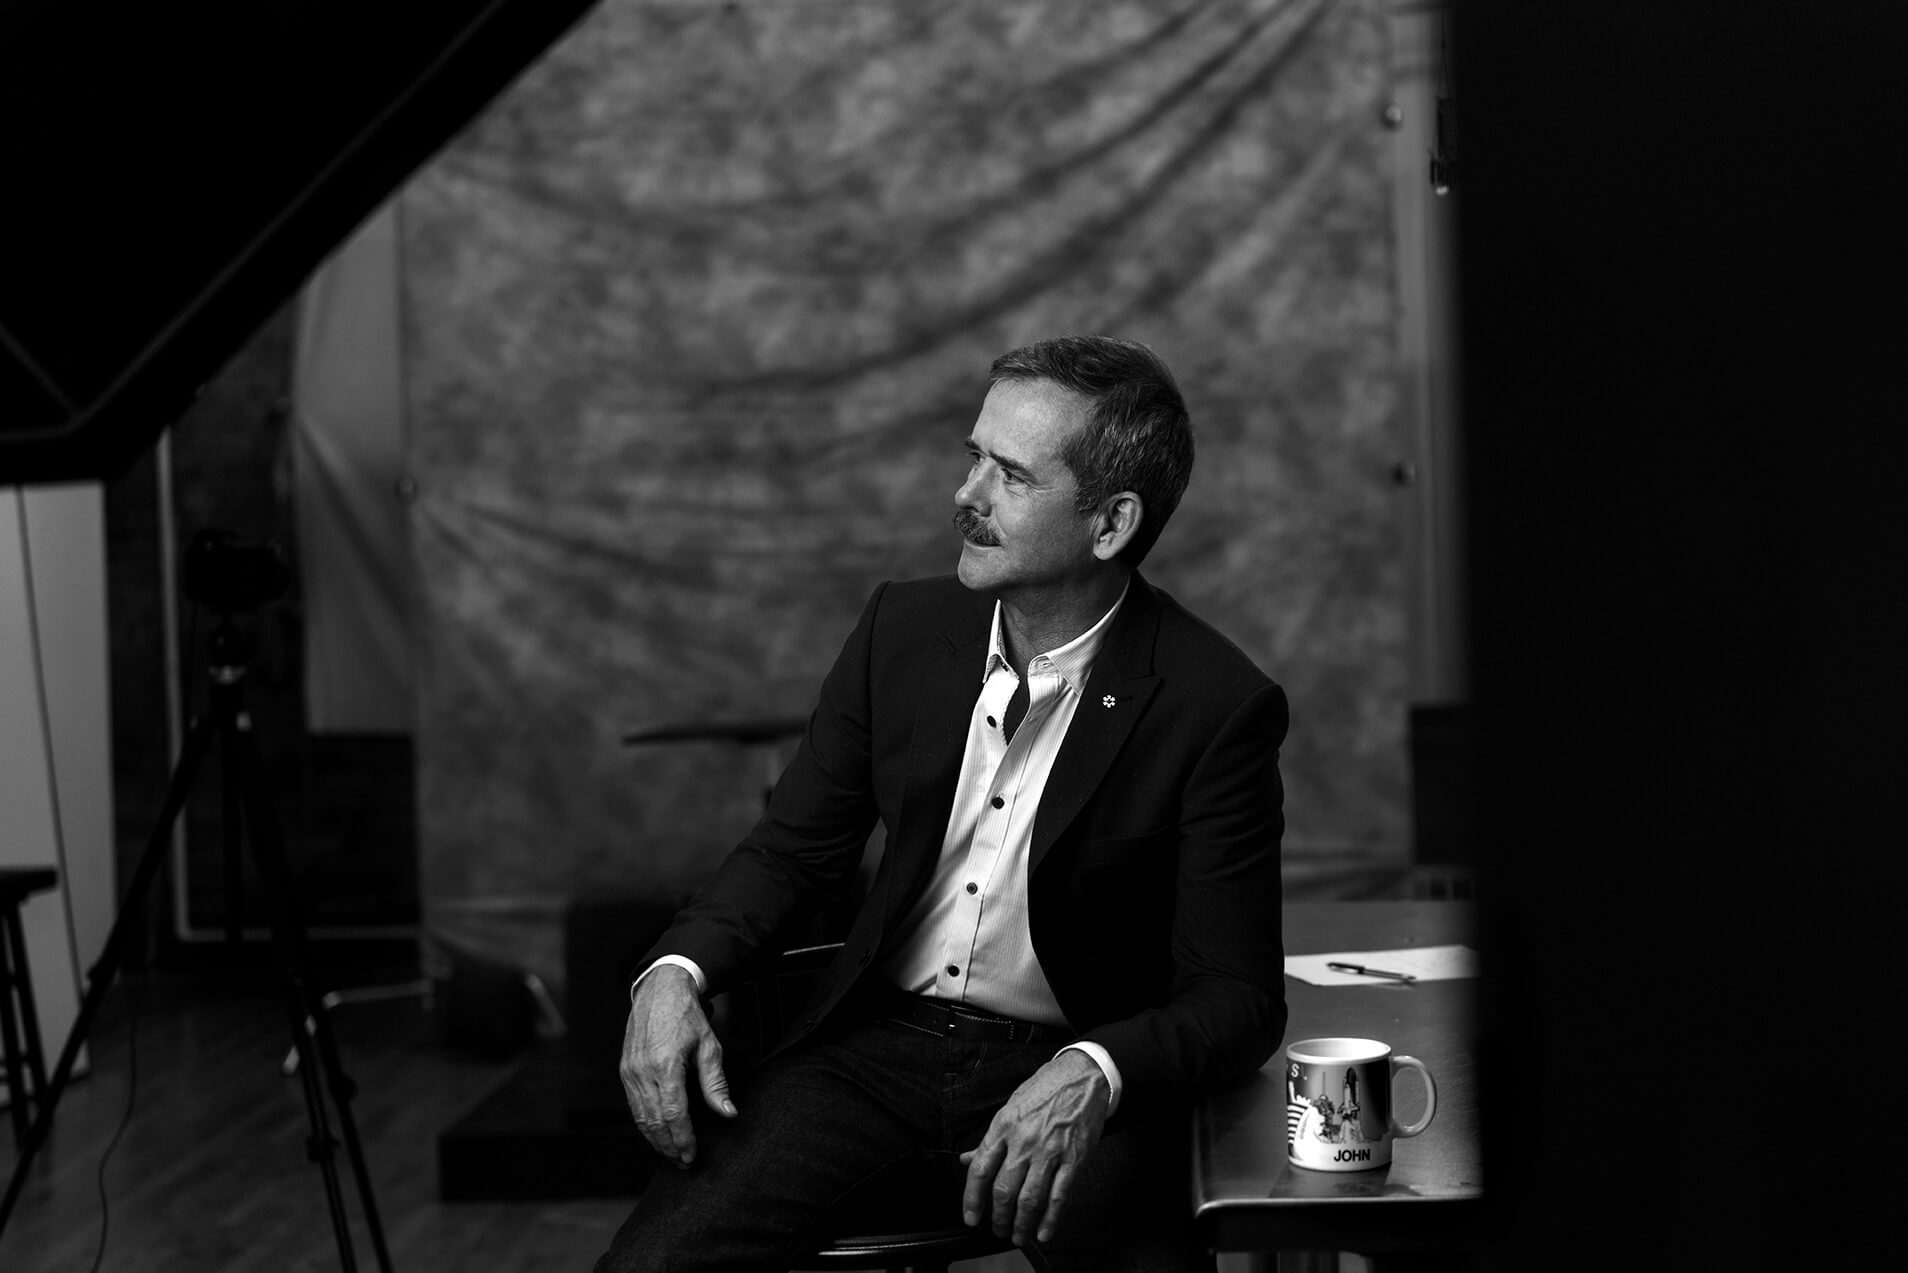 Unified Content toronto, Unified Content, Max Rosenstein, Chris Hadfield, Astronaut, Chris Hadfield Astronaut, Canadian Astronaut, Chris Hadfield Masterclass, NASA, International Space Station, Space Exploration, Photography, Portrait, Portrait photography, black and white portrait, black and white photography, toronto, toronto photography, advertising, advertising toronto, toronto advertising